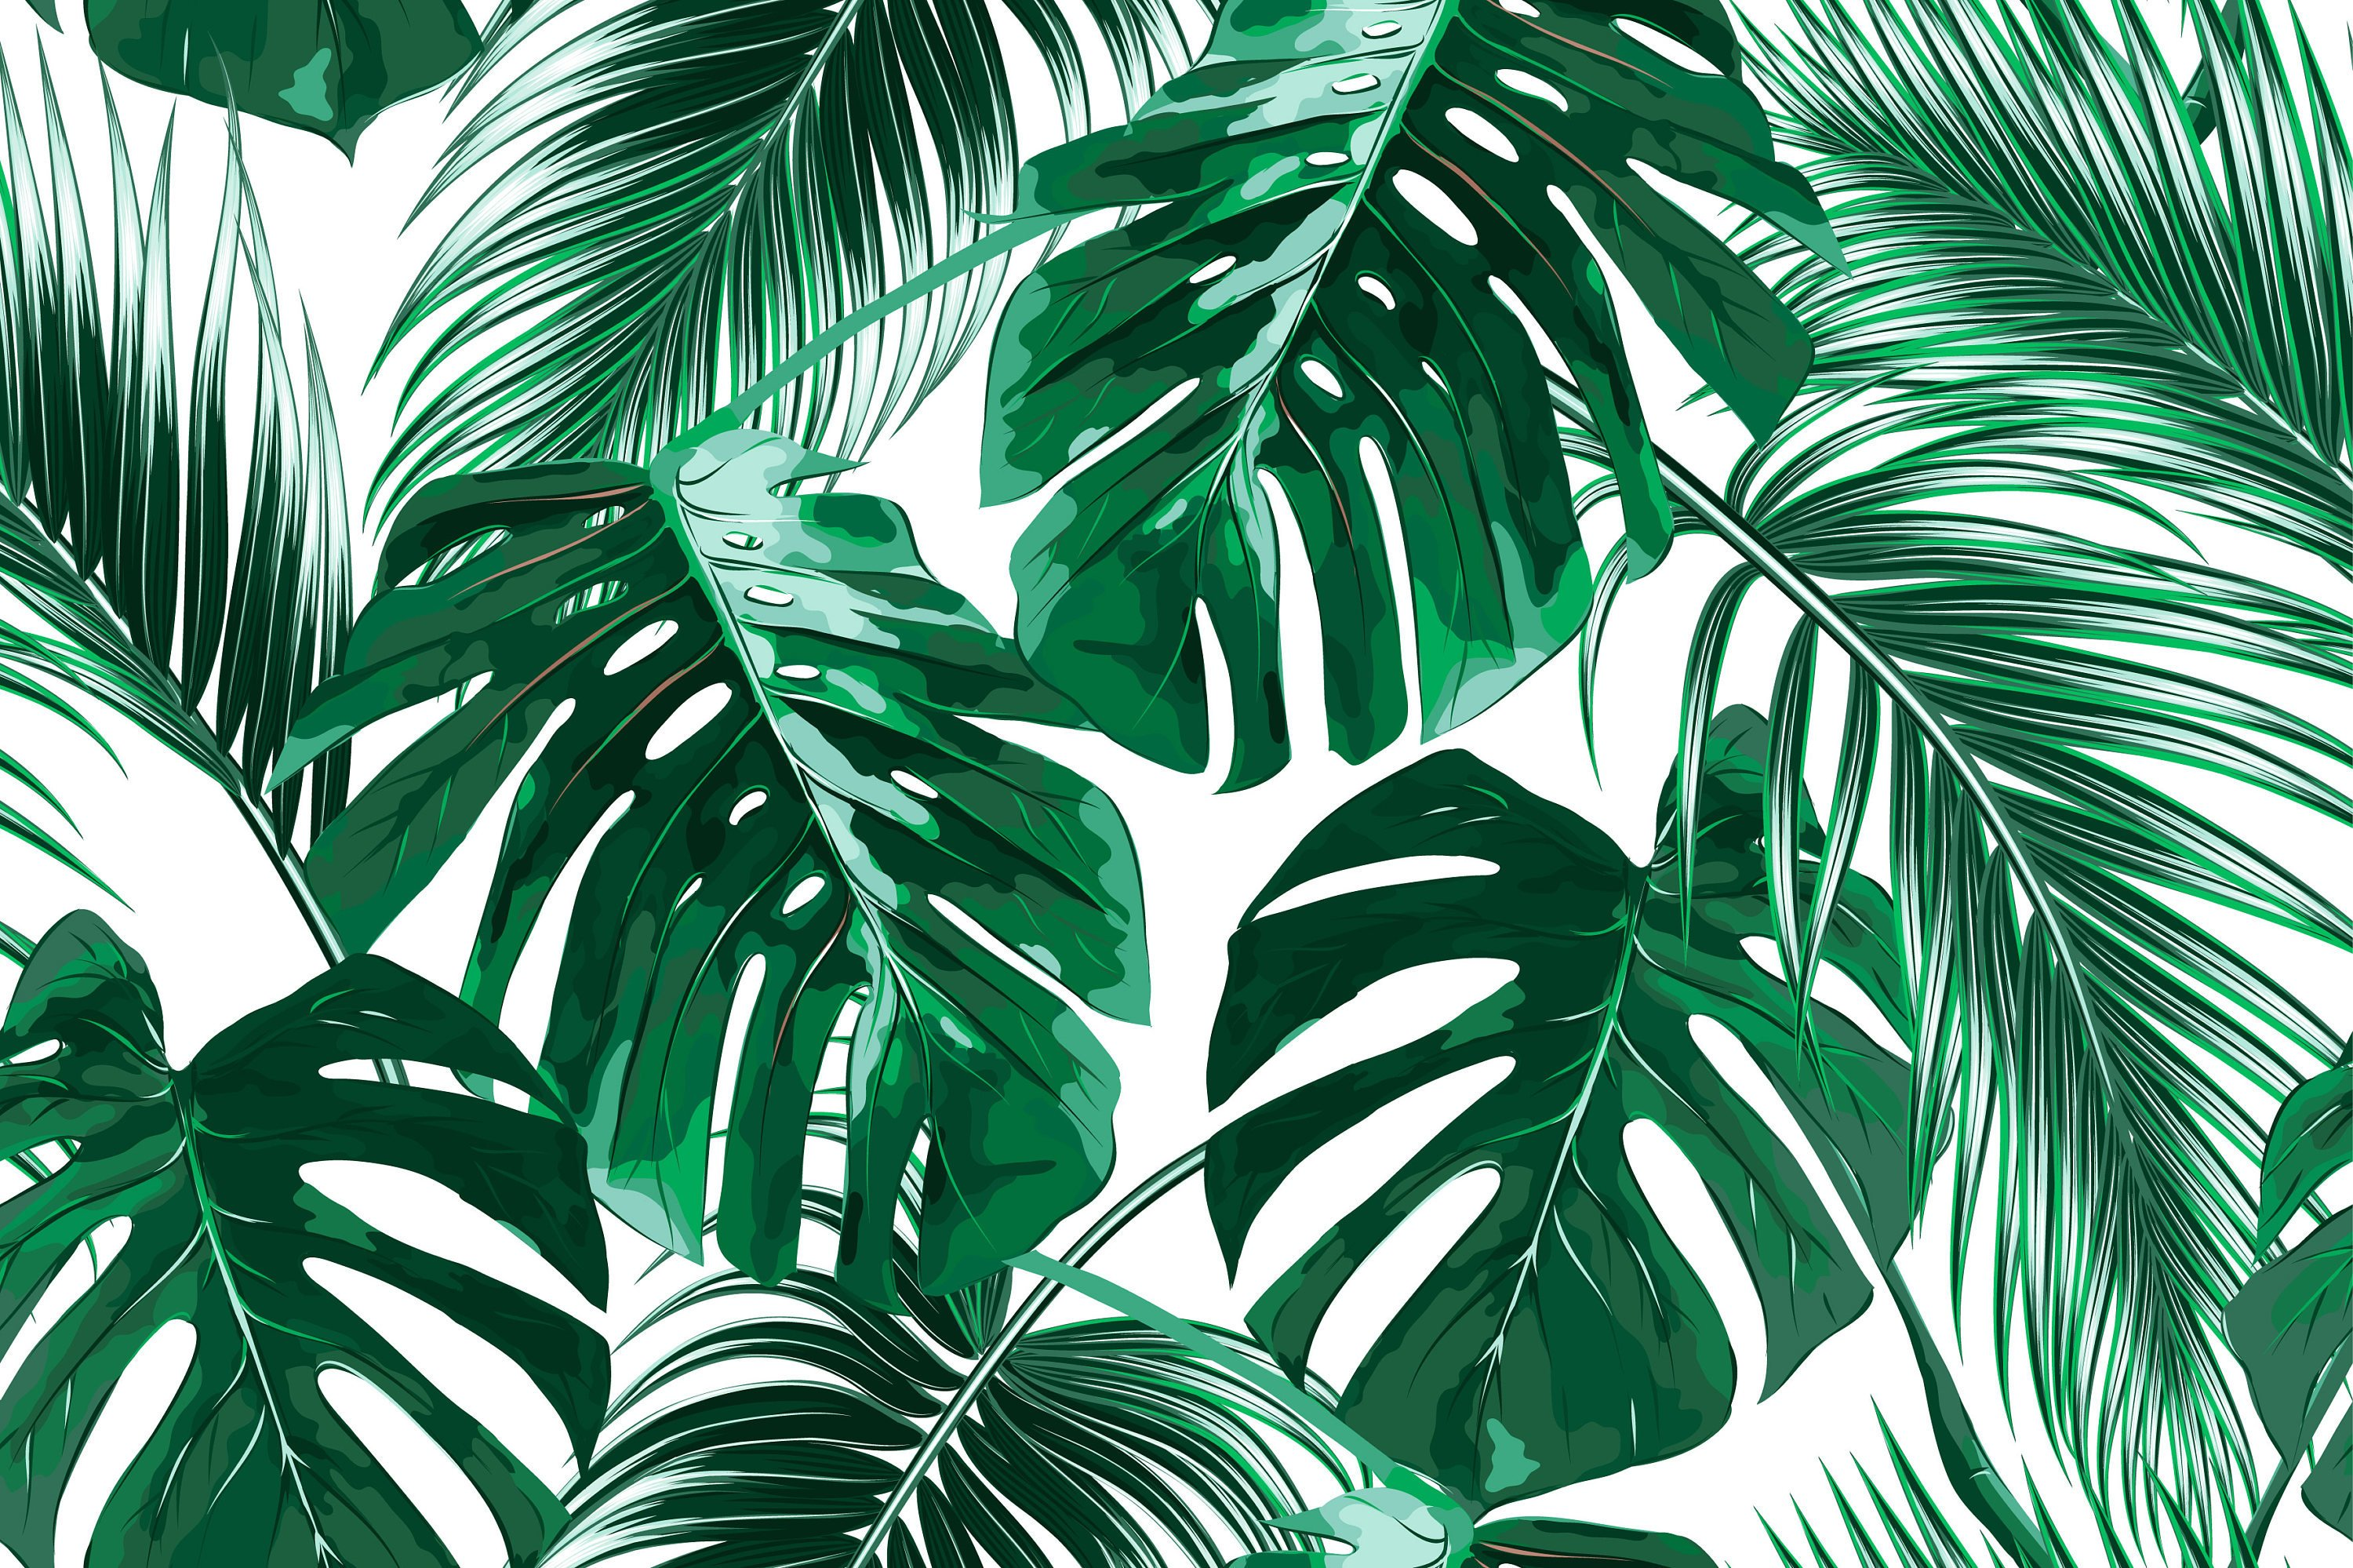 Tropical Leaf Wallpapers Wallpaper Cave If you're in search of the best beach desktop wallpaper, you've come to the right place. tropical leaf wallpapers wallpaper cave